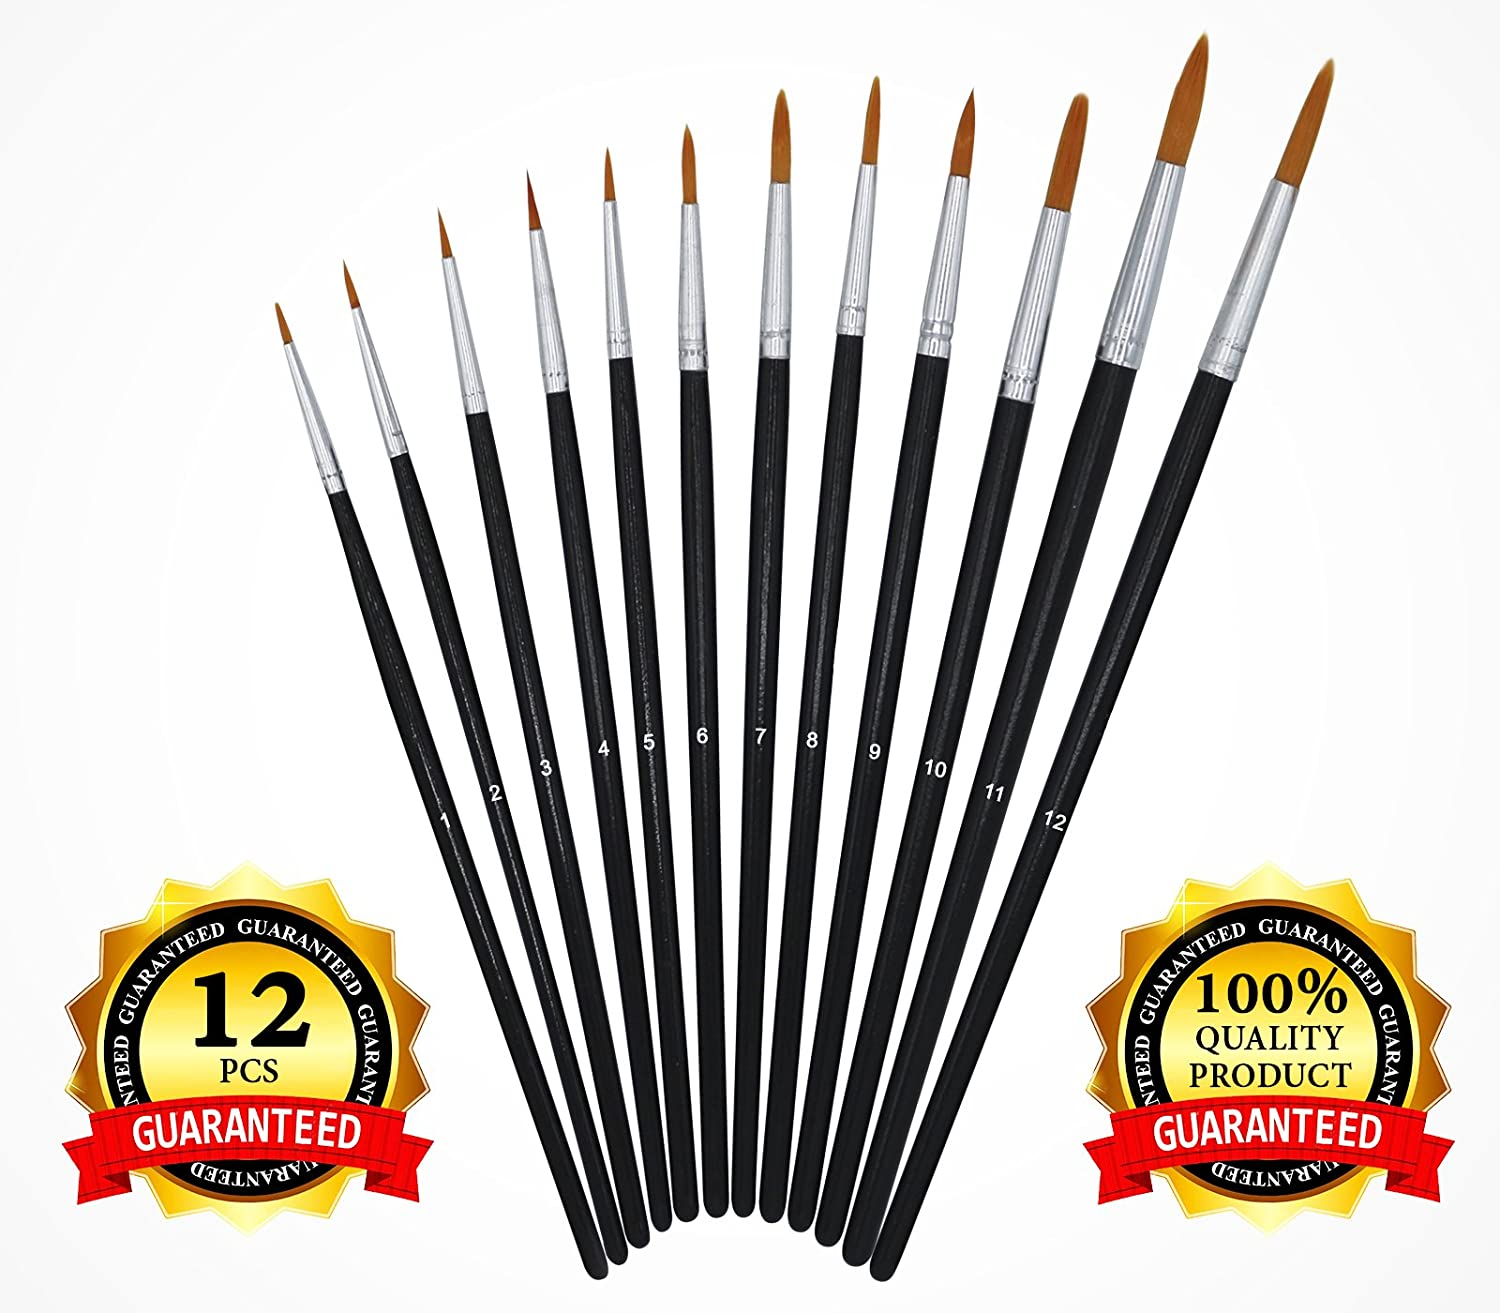 Paint Brush Set - Round Pointed Tip Nylon Hair - Short Handle - Paint Brushes Art Set for Acrylic Watercolor Oil Gouache Tempera. Artist Paint Brushes for Kids Student Artist or Hobbyist - 12 Pieces USABestSolution 4336962553